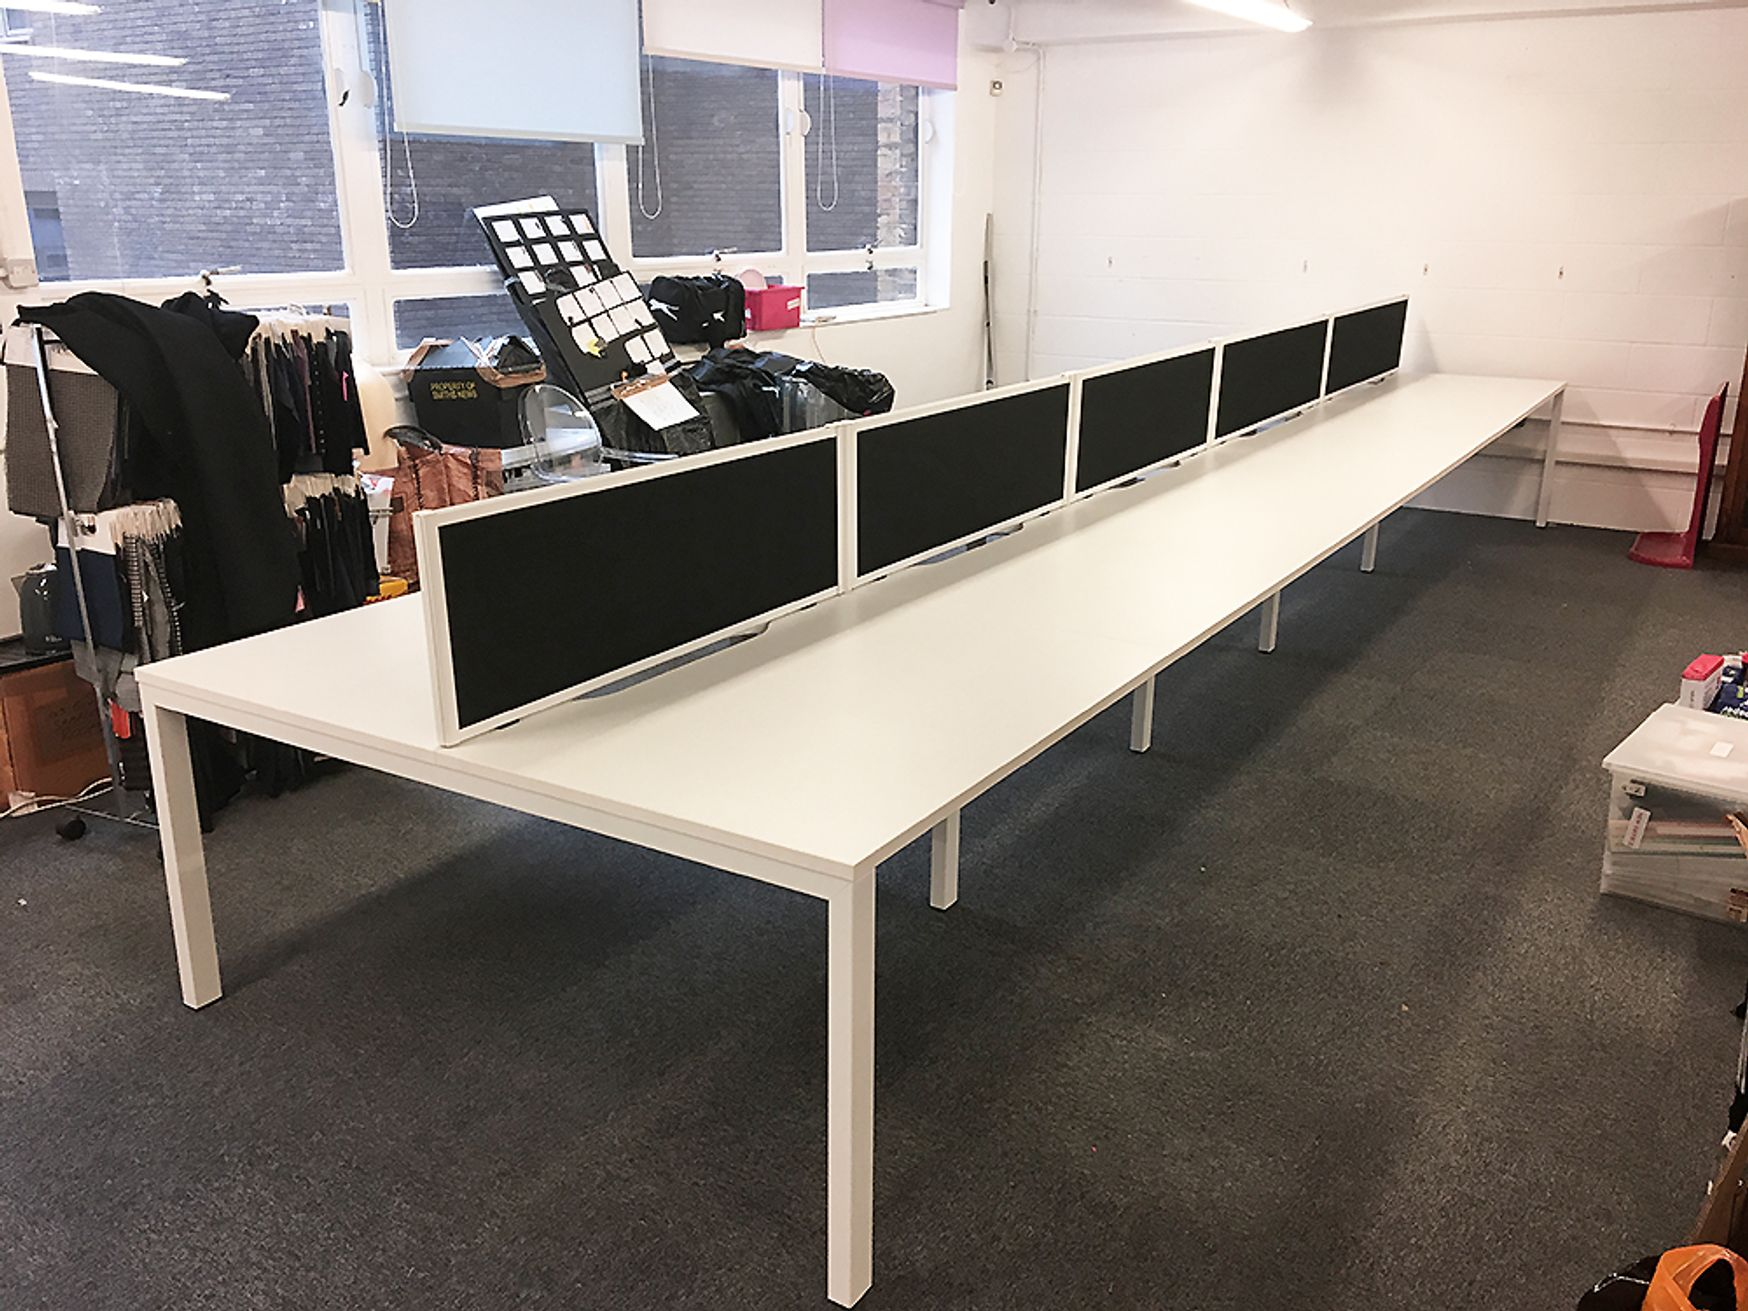 Further view of the White Bench Desks shown in the previous photo